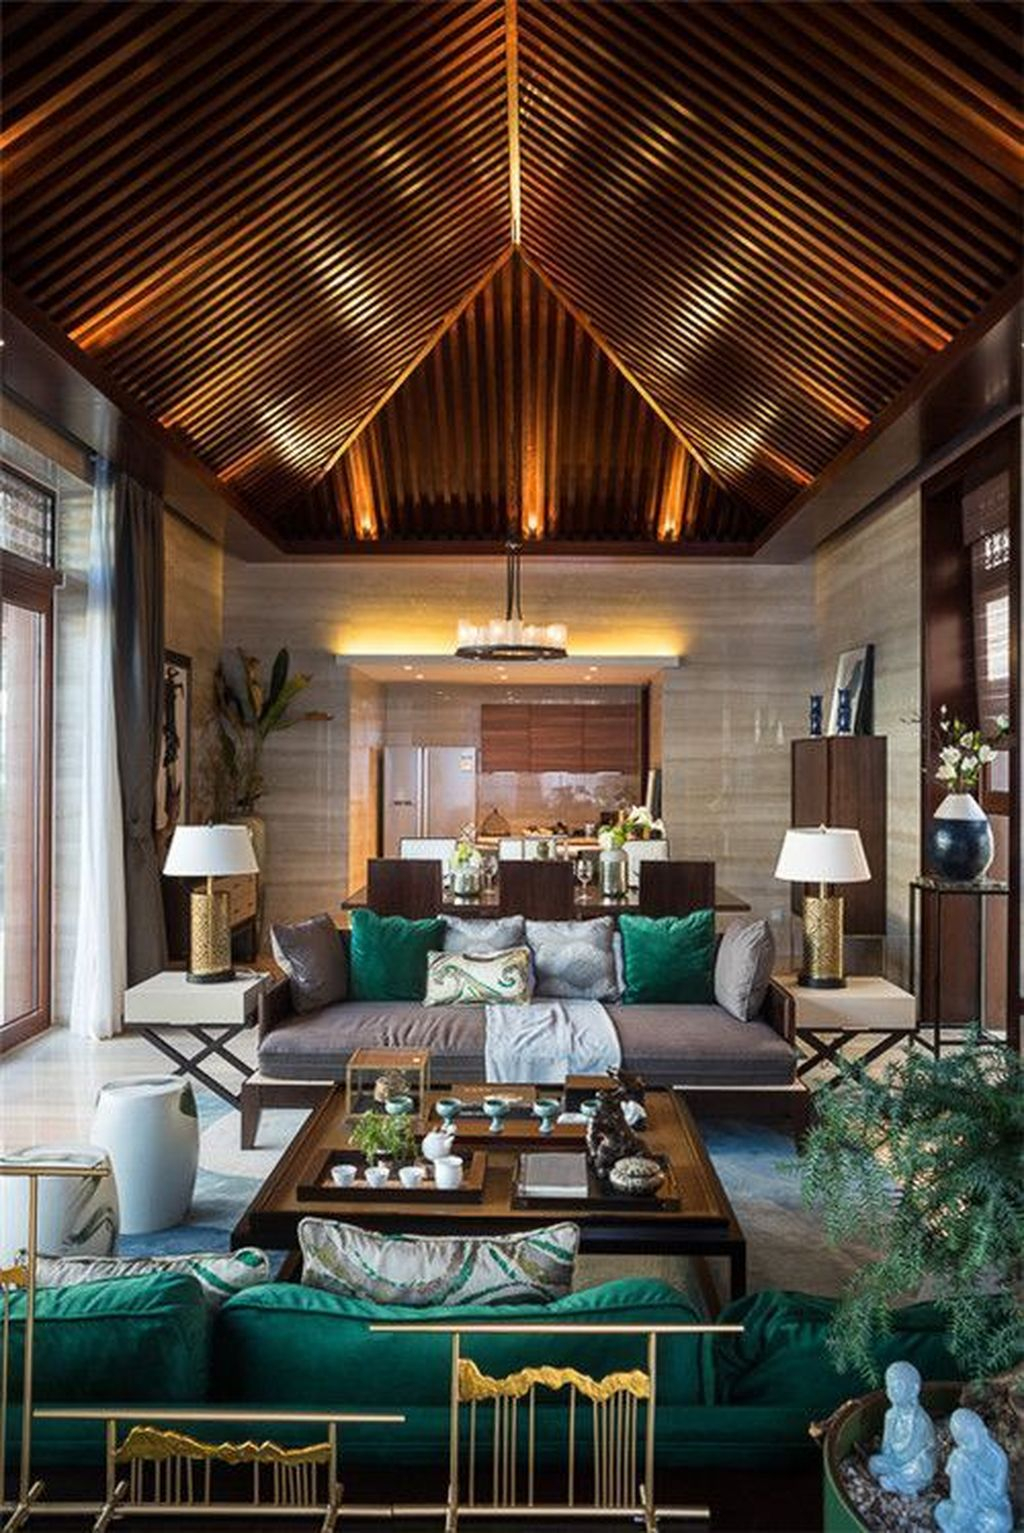 Extraordinary Joglo House Design Ideas With Rustic Elements To Copy 12